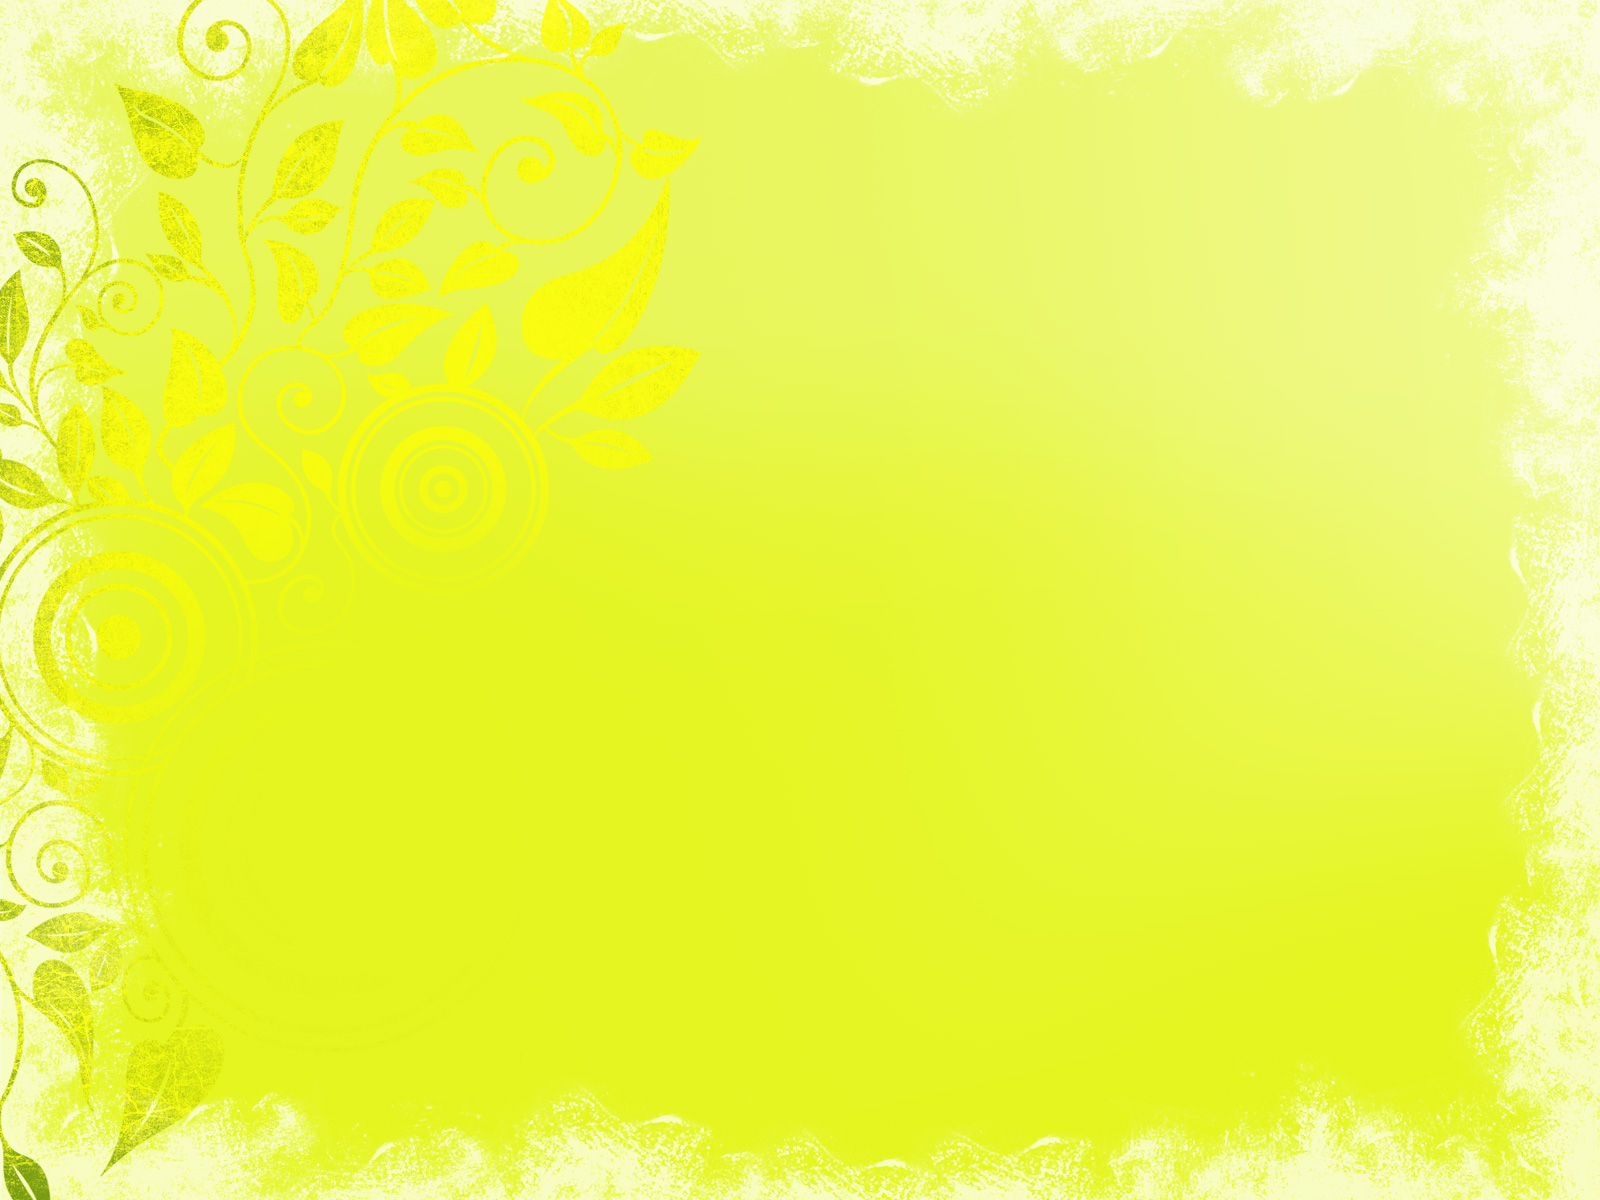 borders frames floral yellow ornament frame backgrounds powerpoint1jpg - Yellow Picture Frames